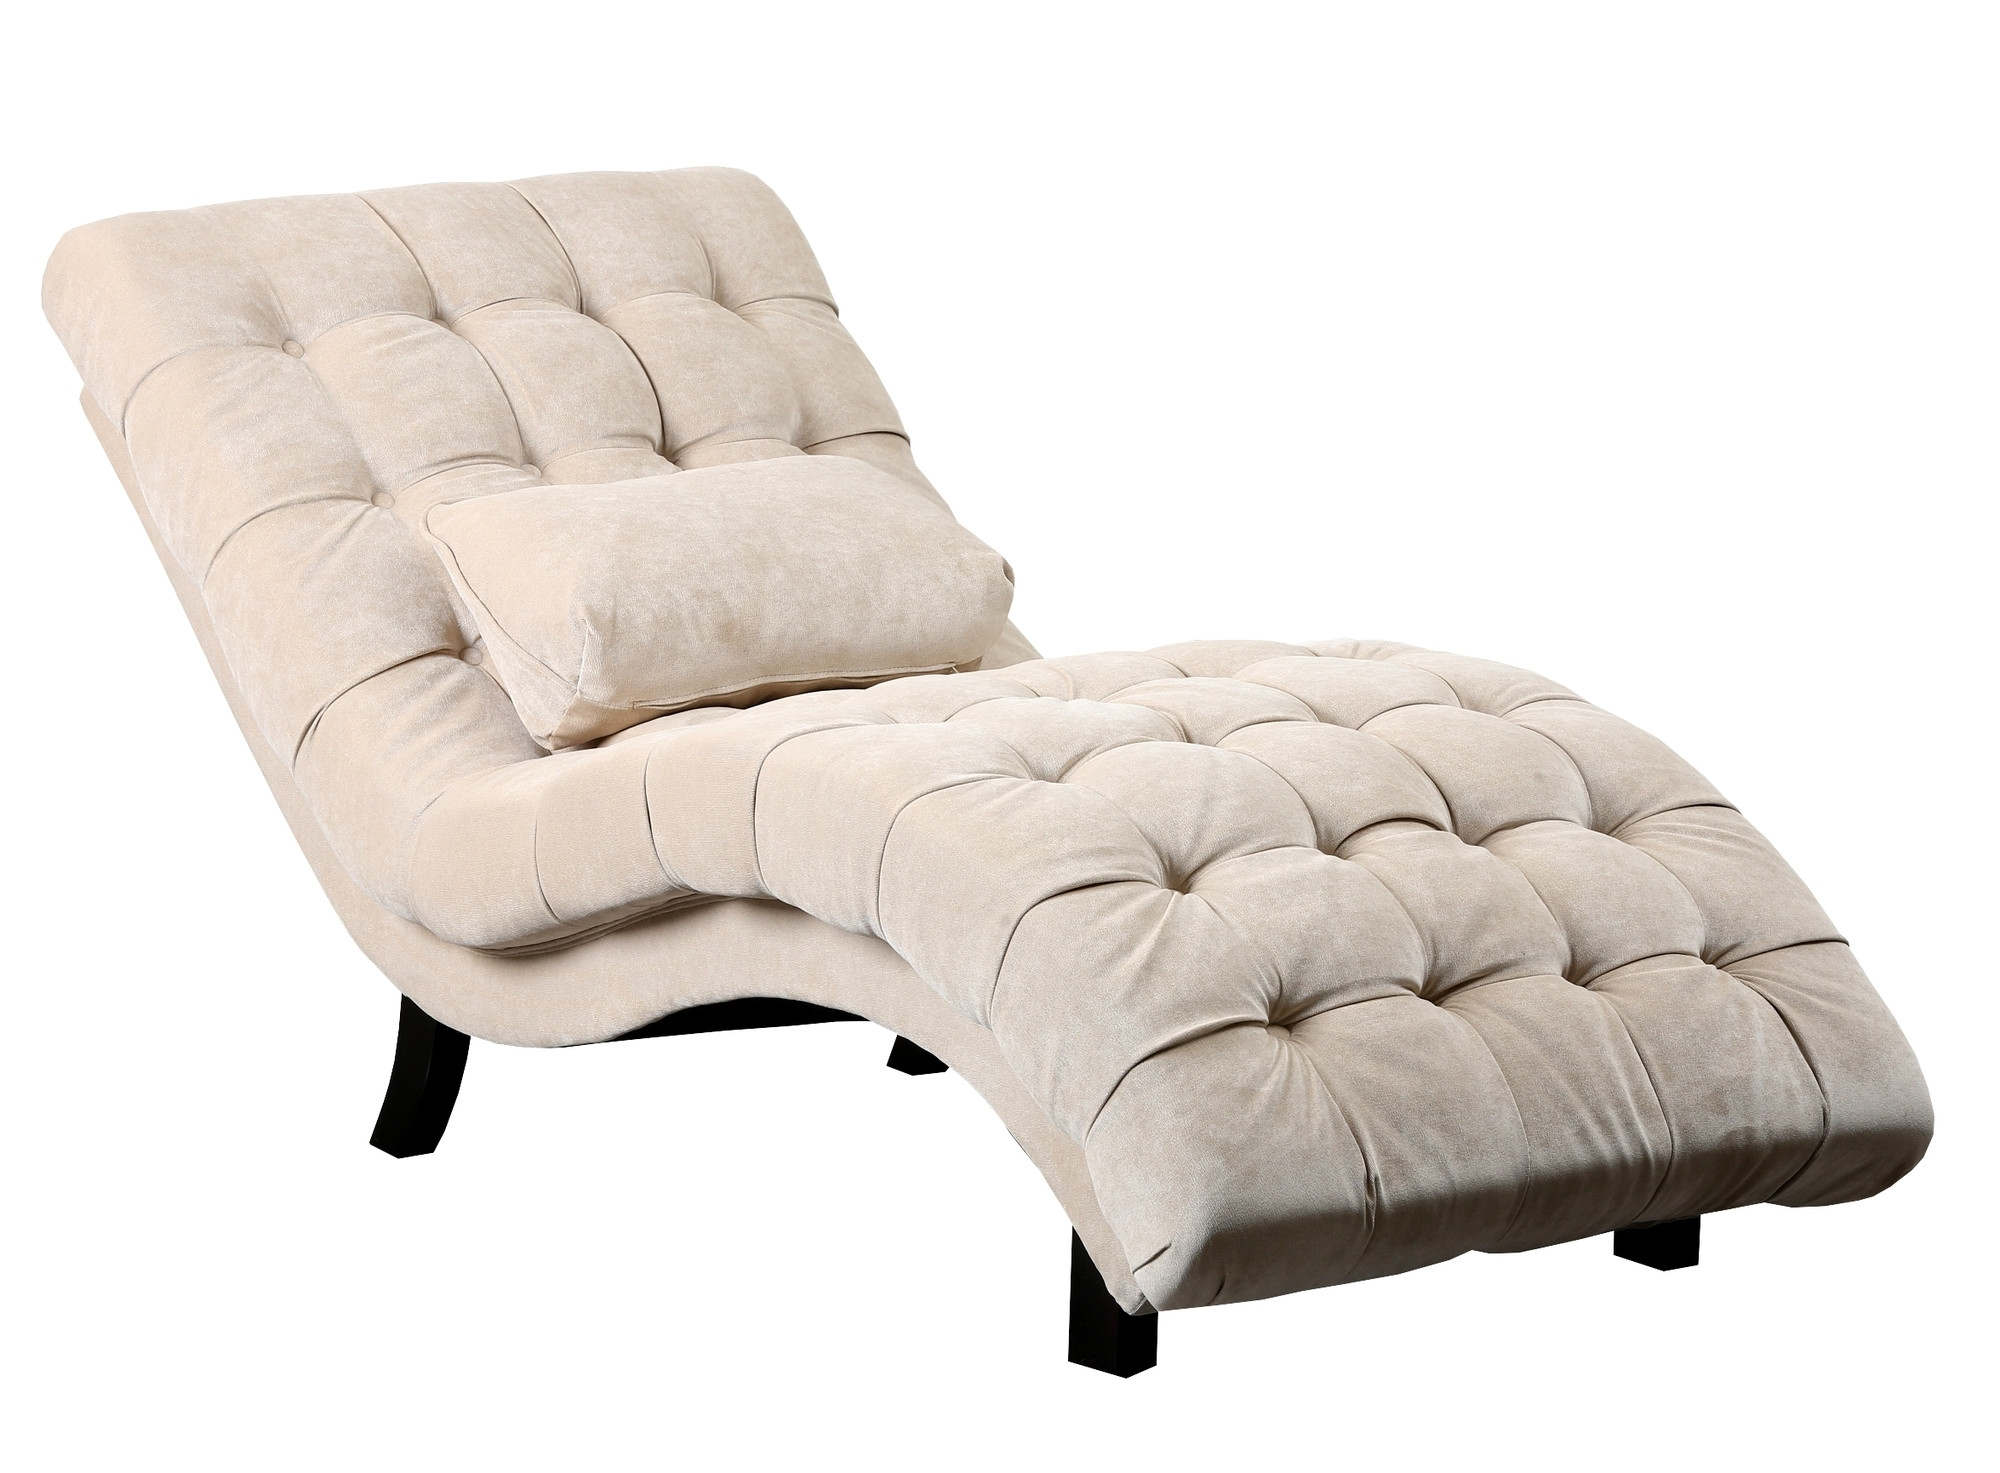 Famous Fabric Chaise Lounges Throughout Furniture: Beige Tufted Chaise Lounge With Lumbar Pillow At (View 15 of 15)